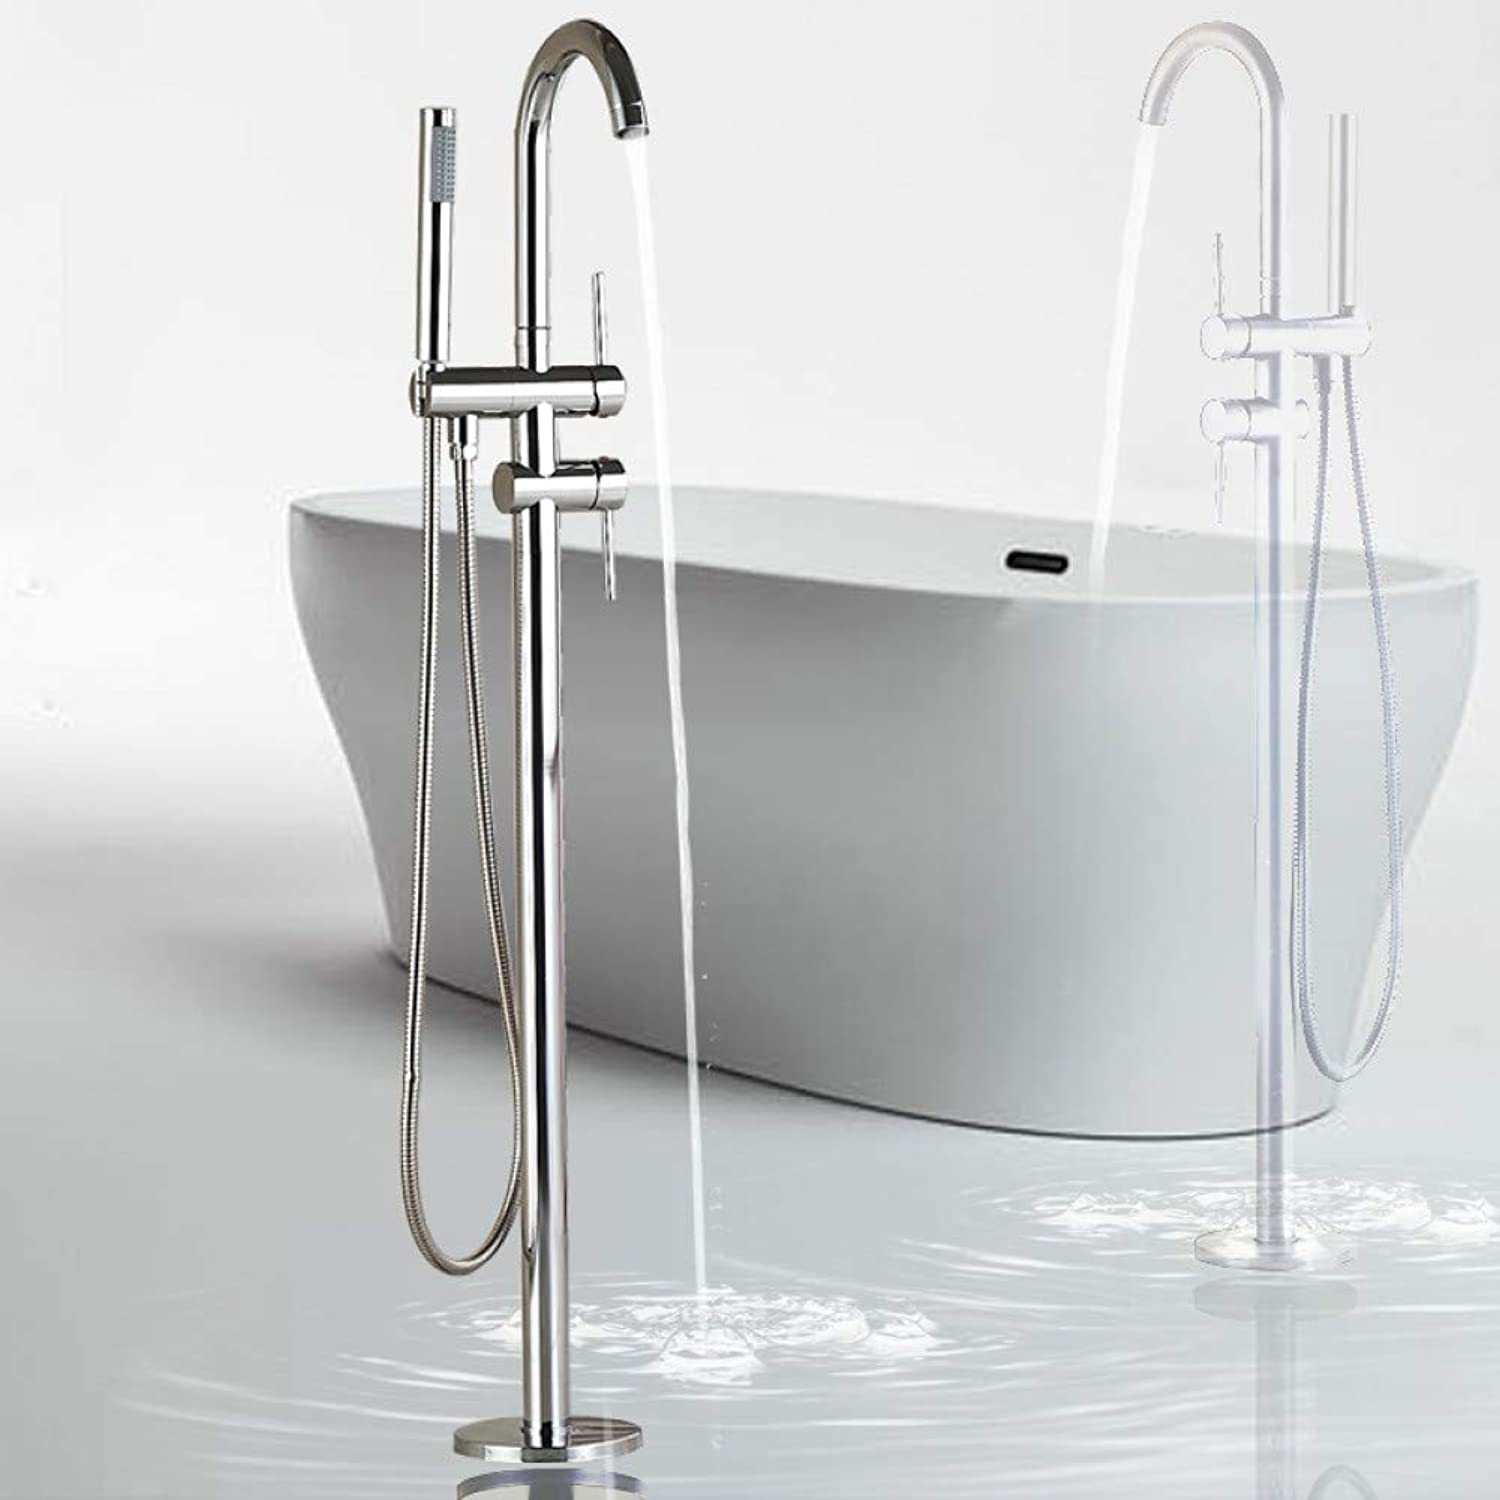 HUASAA Floor Mounted Chrome Bath Tub Faucet Clawfoot Free Standing Bath Mixer Tap with Handshower Single Lever Bathtub Faucet